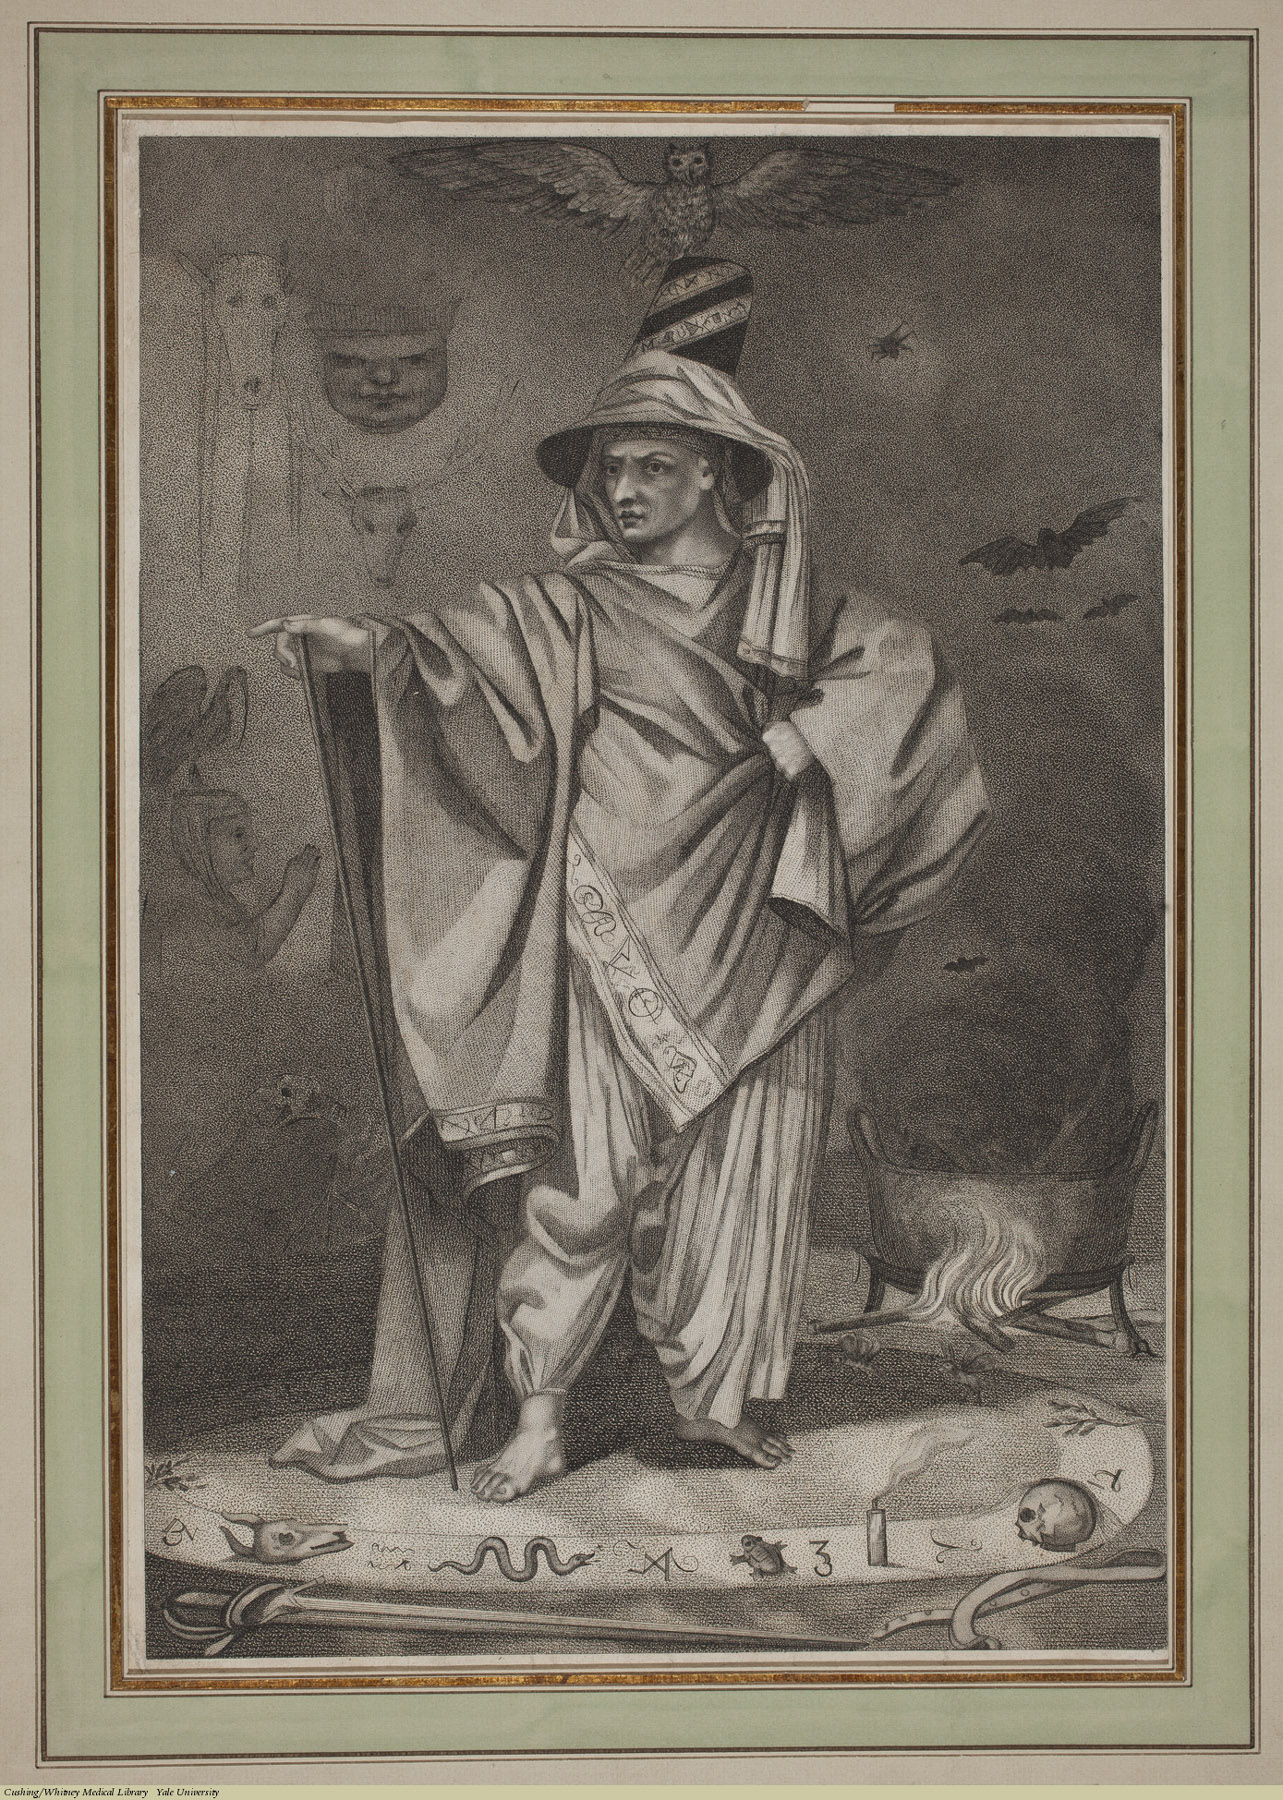 A Wizard. Anonymous, 18th Century. Subject: Wizards.